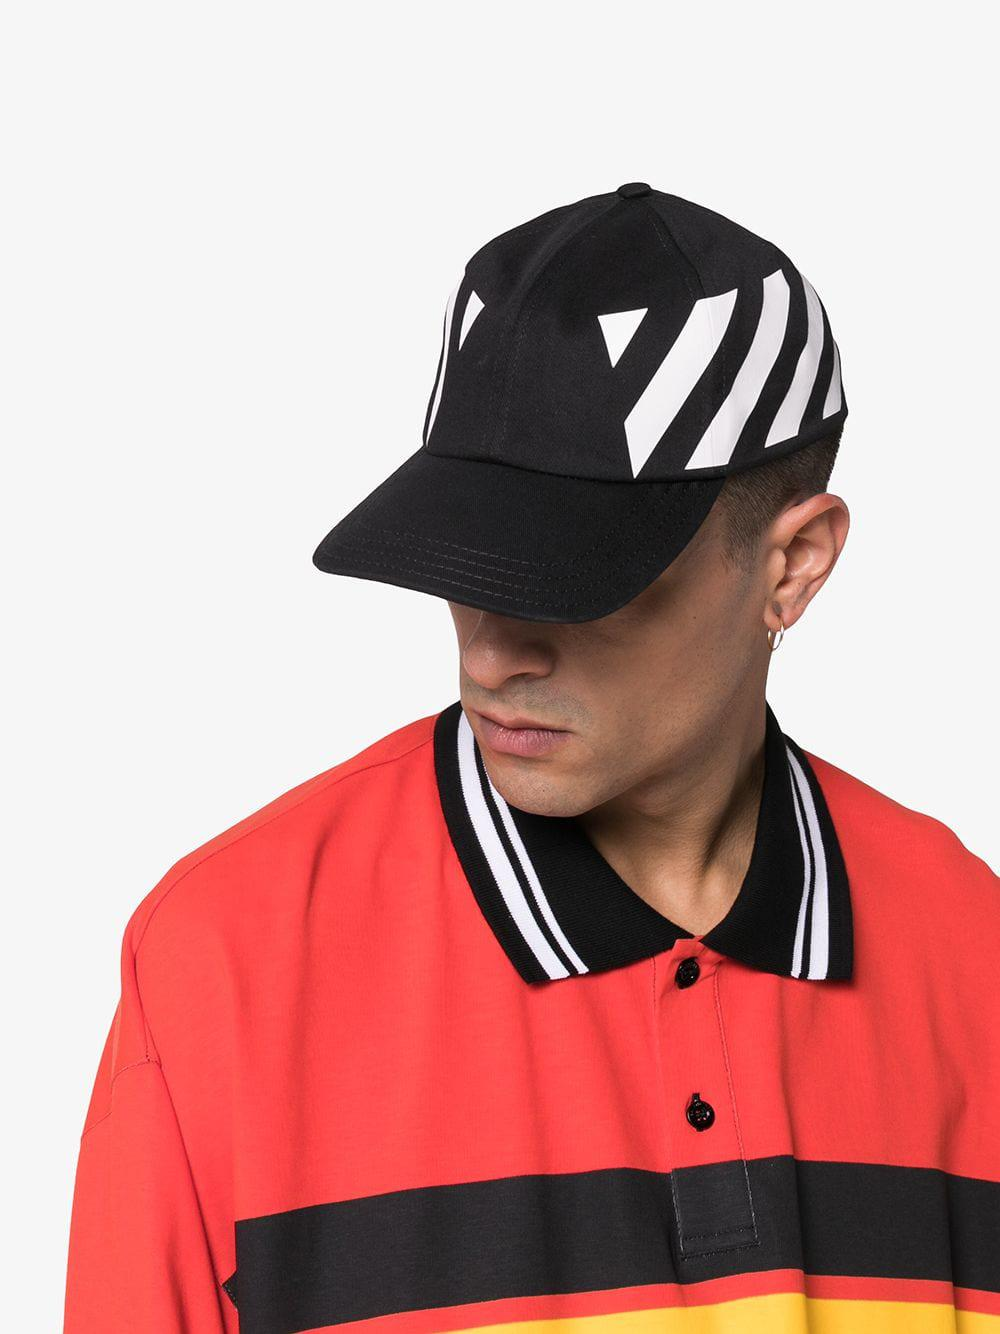 ff34dfd00d4 ... Virgil Abloh - Black And White Striped Baseball Cap for. View fullscreen